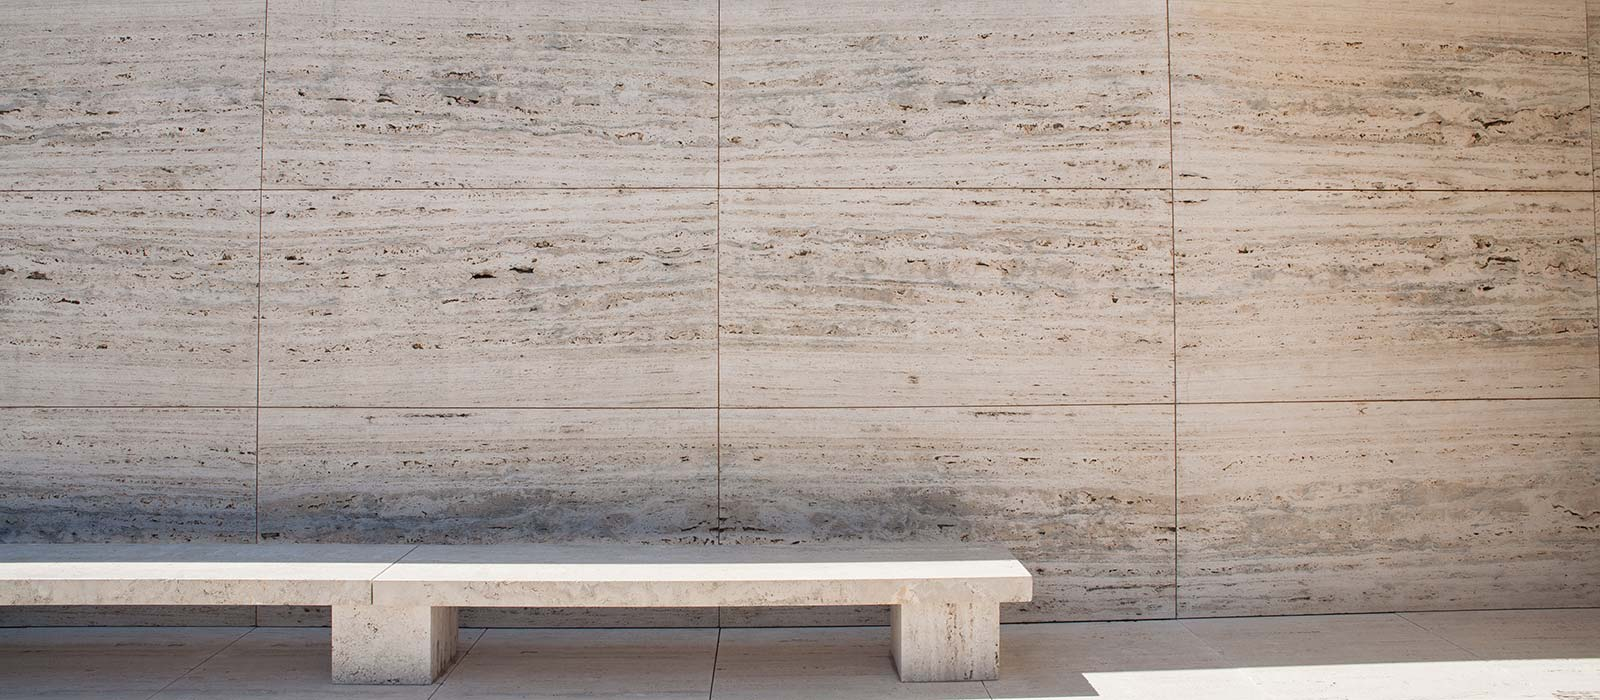 Mies van der Rohes marble and bench